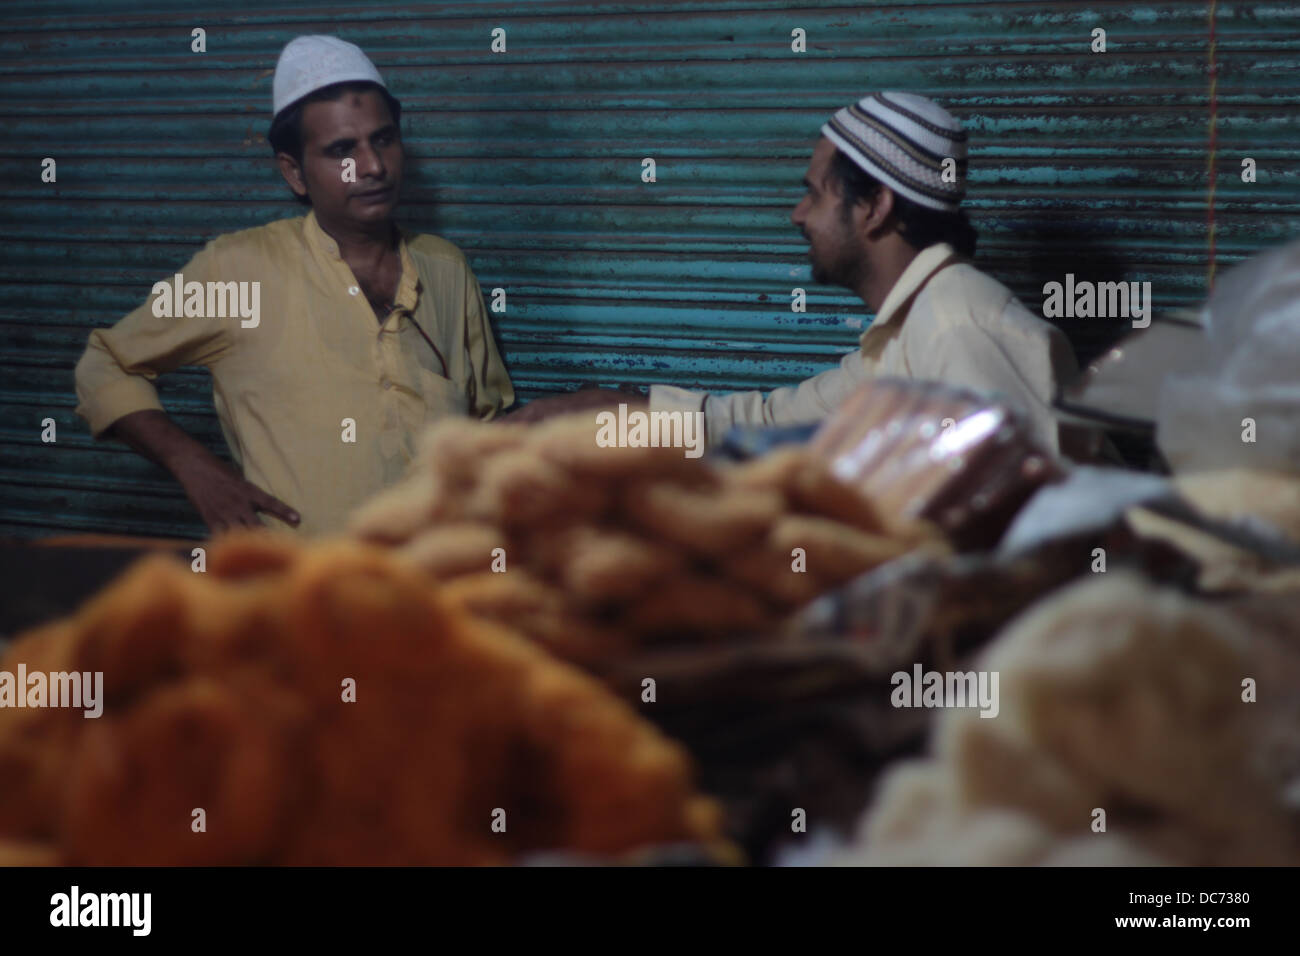 Muslim shopkeepers talk in Delhi, India, on the occasion of Eid festival. - Stock Image